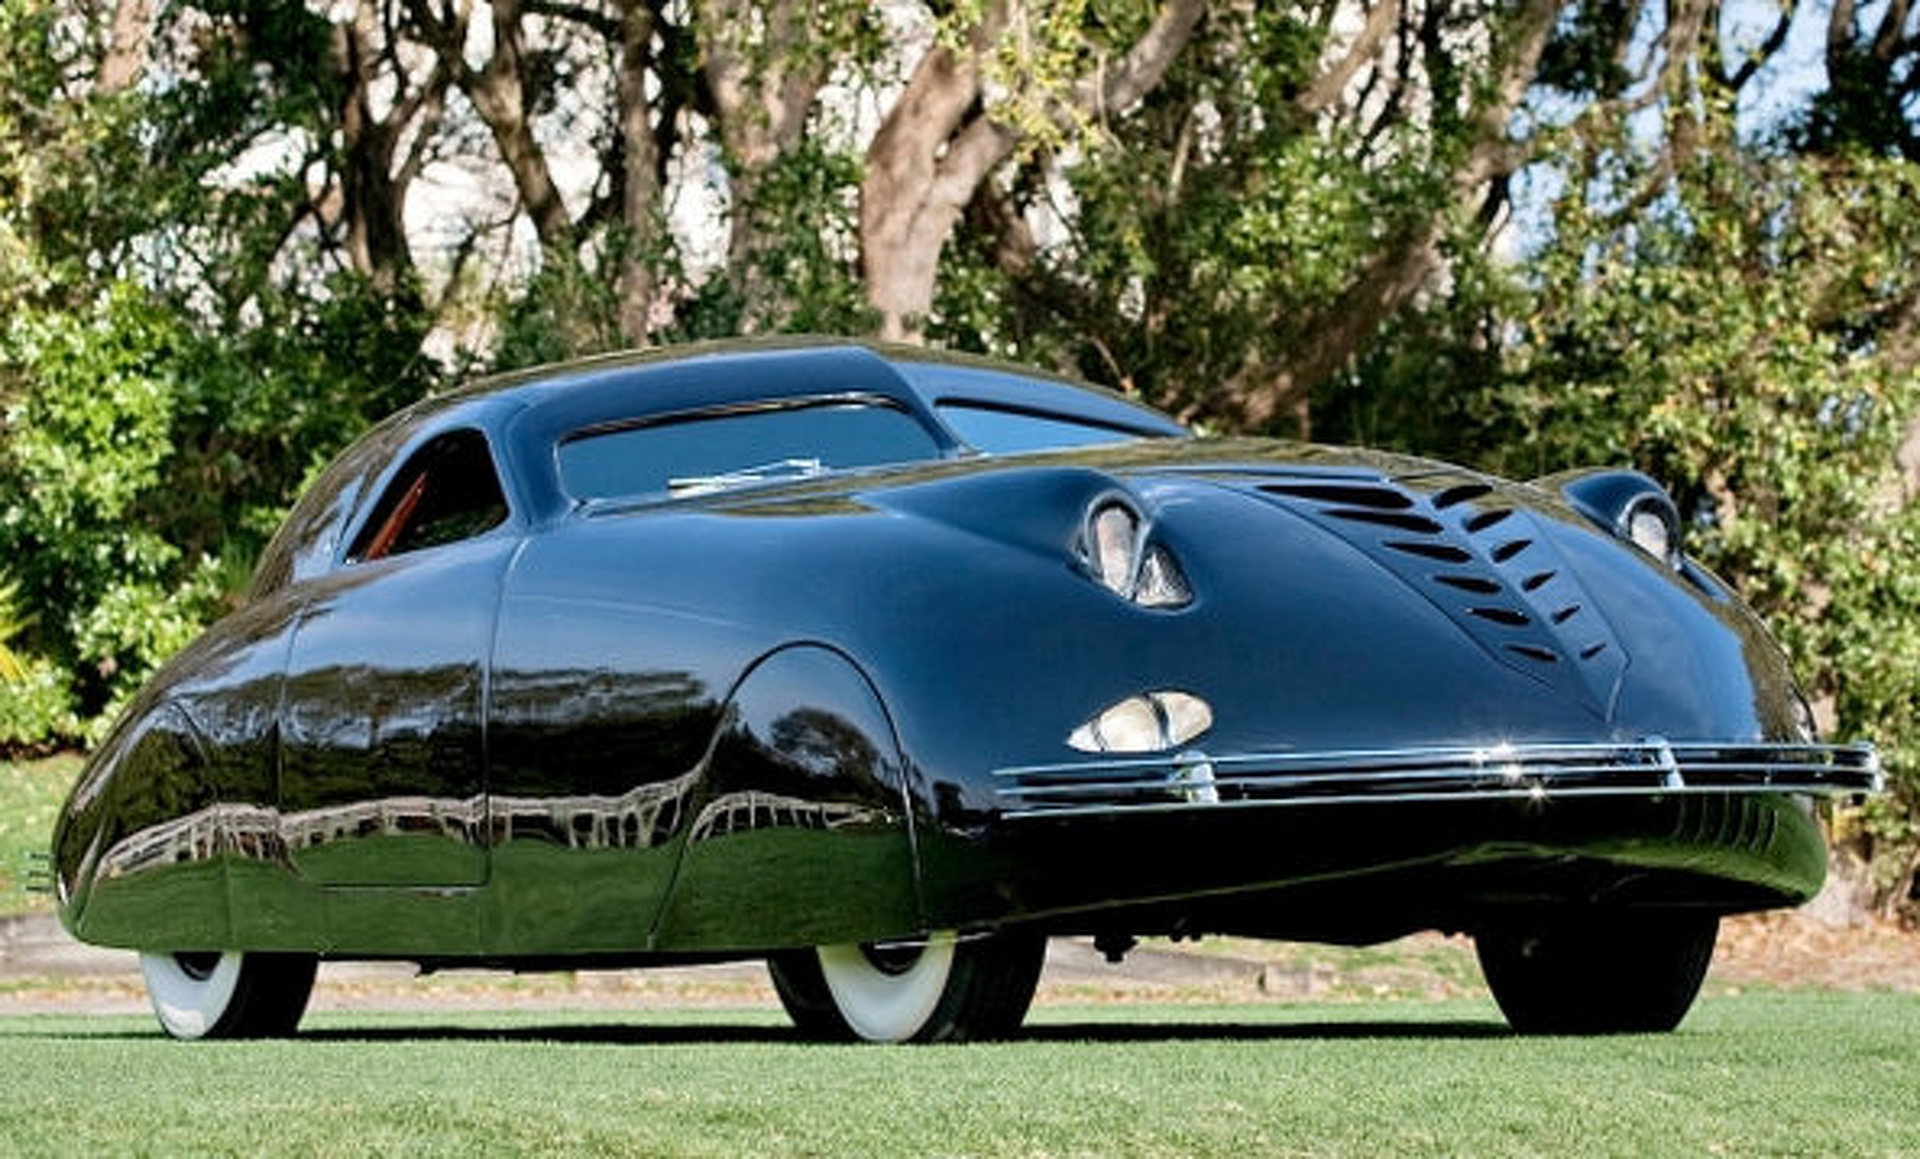 1938 Phantom Corsair: Buck Rogers' Ride for the Road